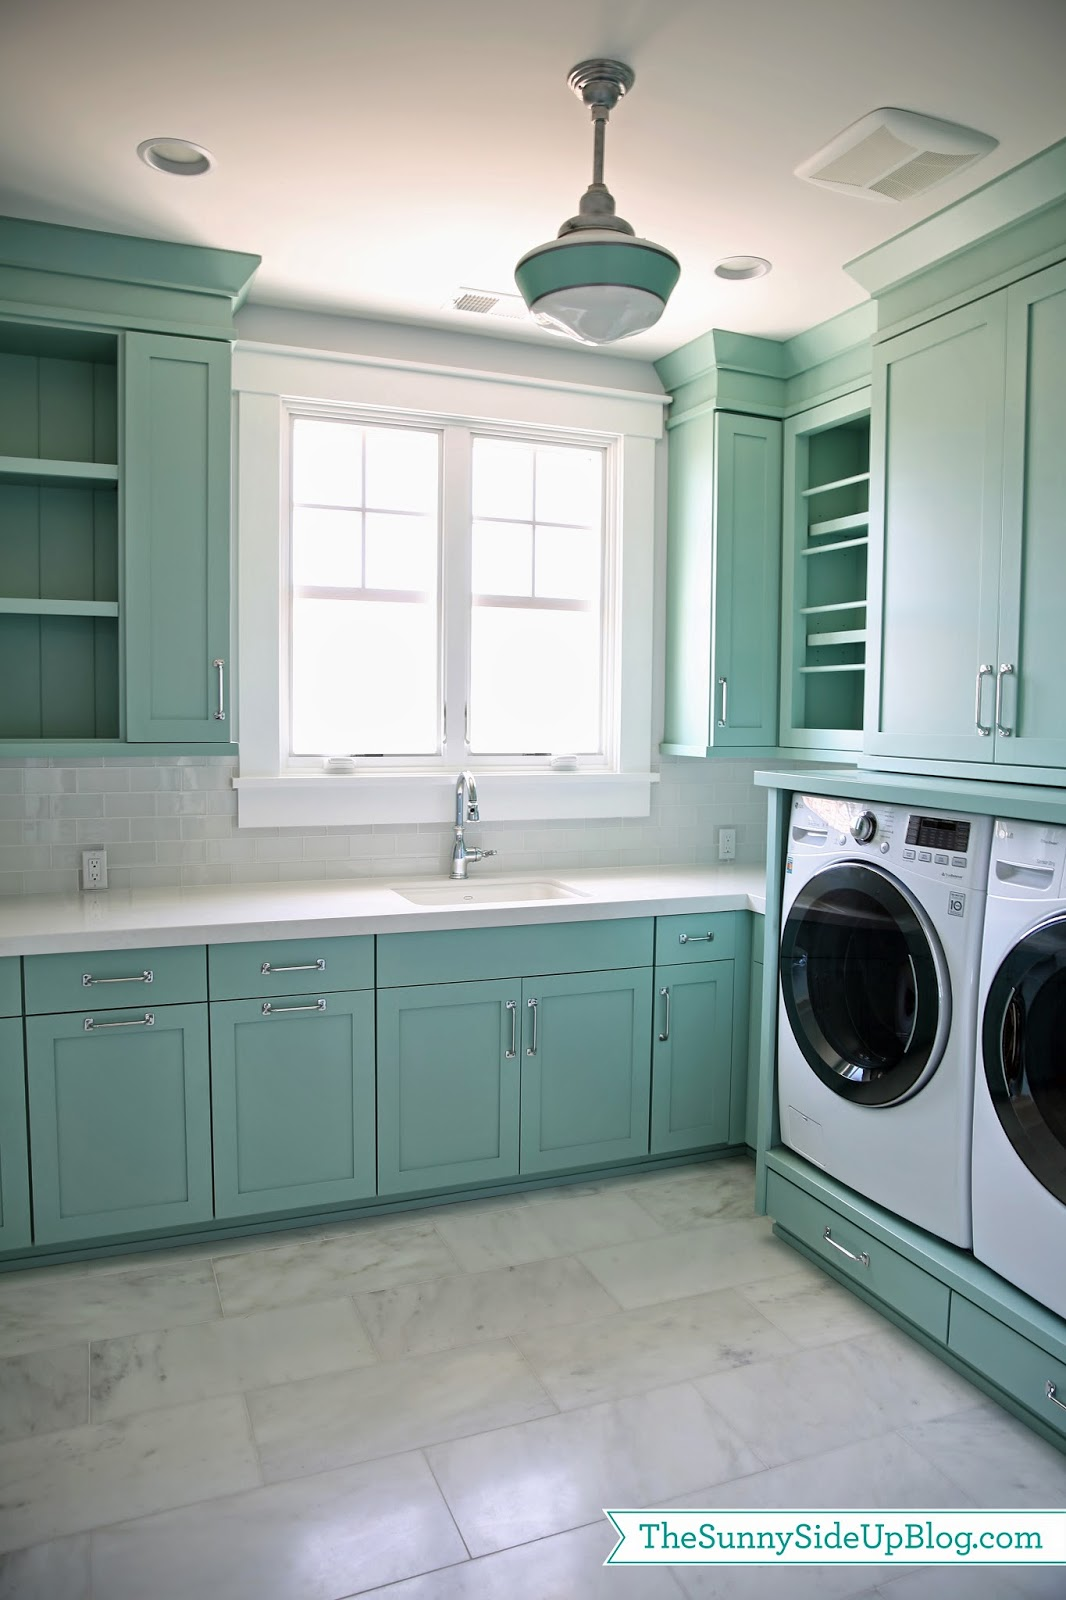 Upstairs Laundry Room - The Sunny Side Up Blog on Laundry Room Cabinets  id=75454